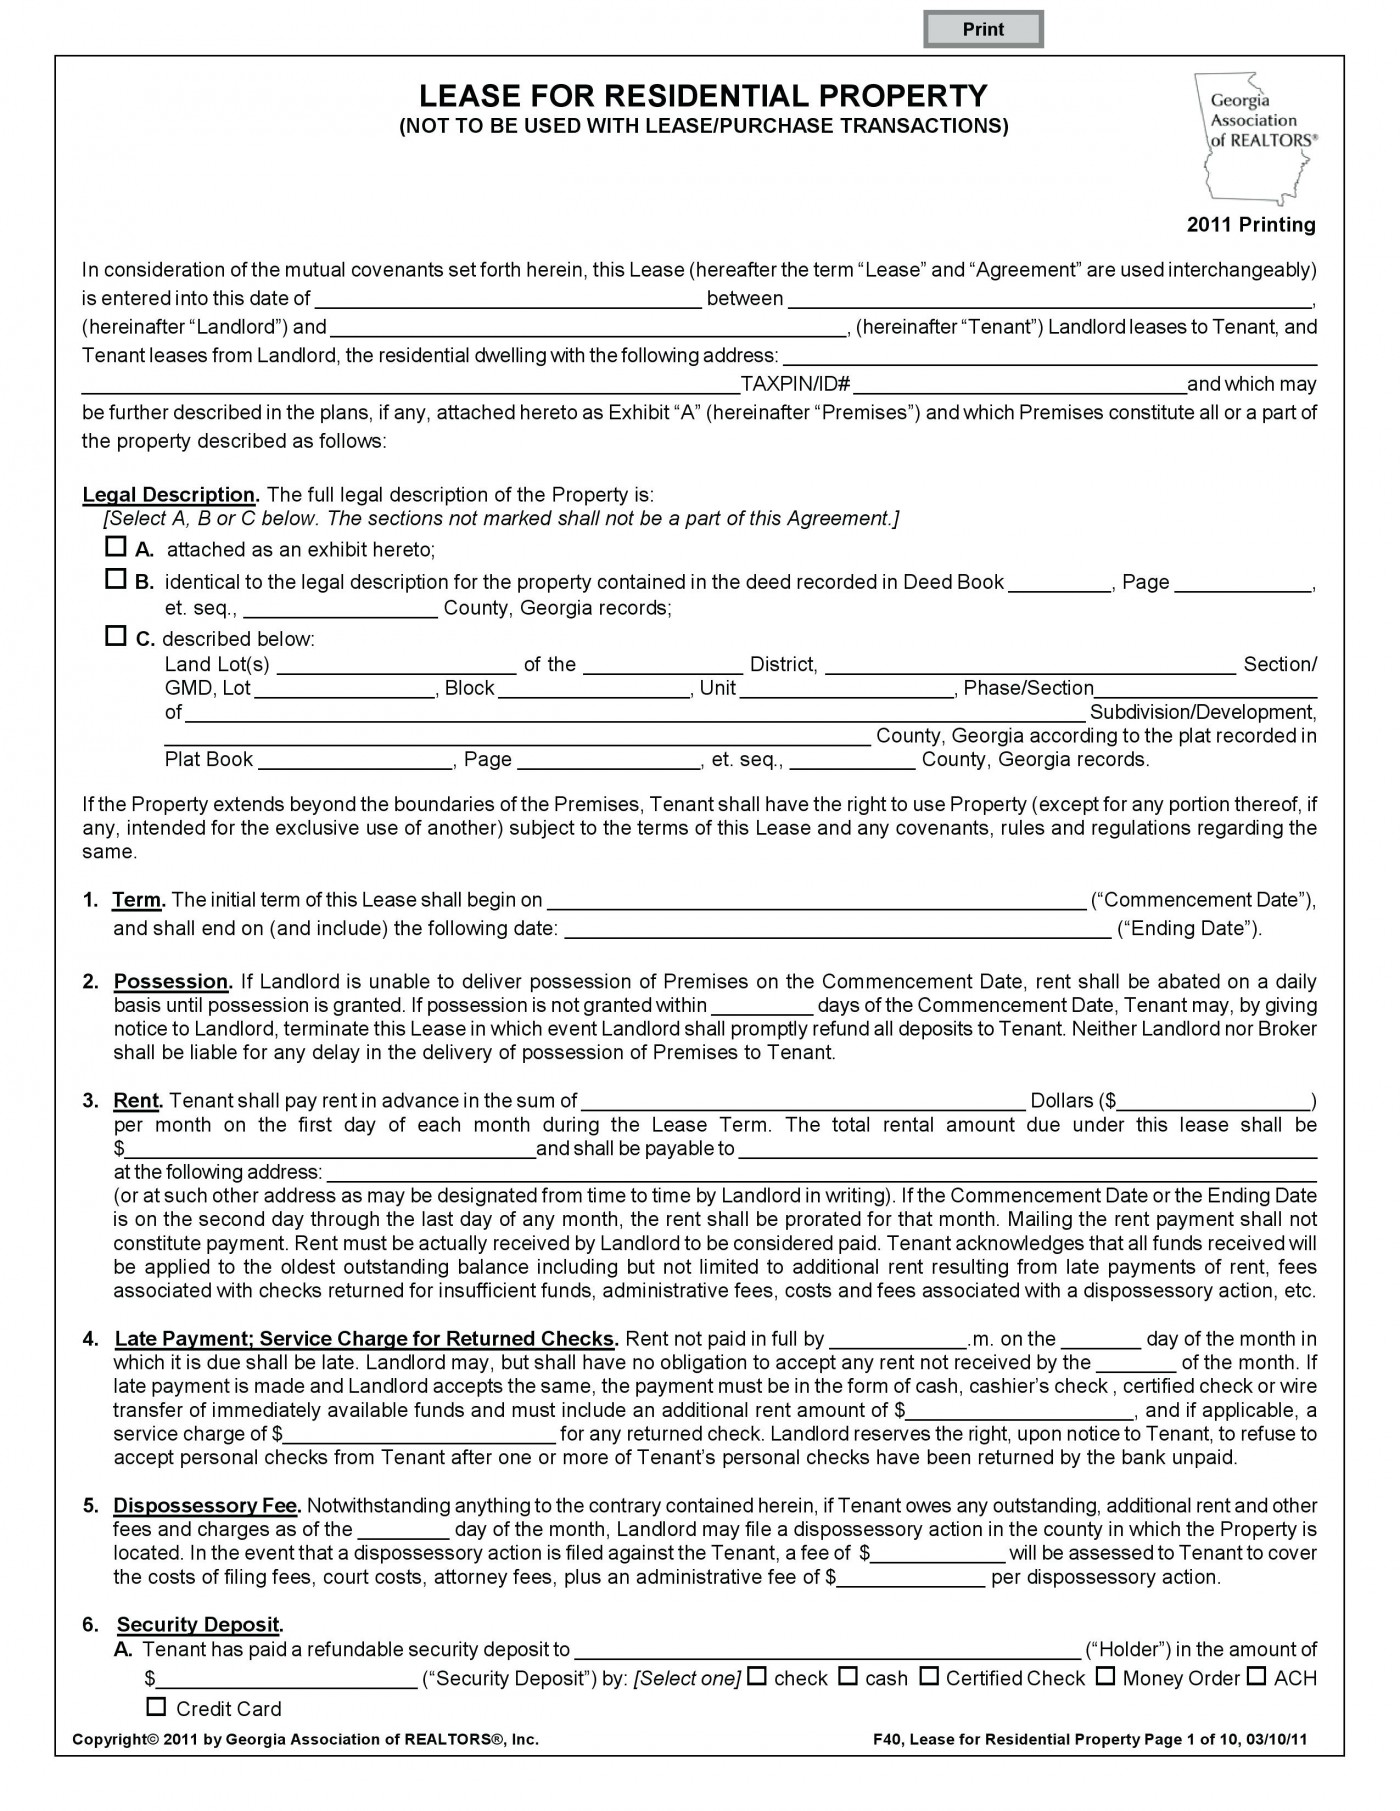 6 Month Rental Agreement Template